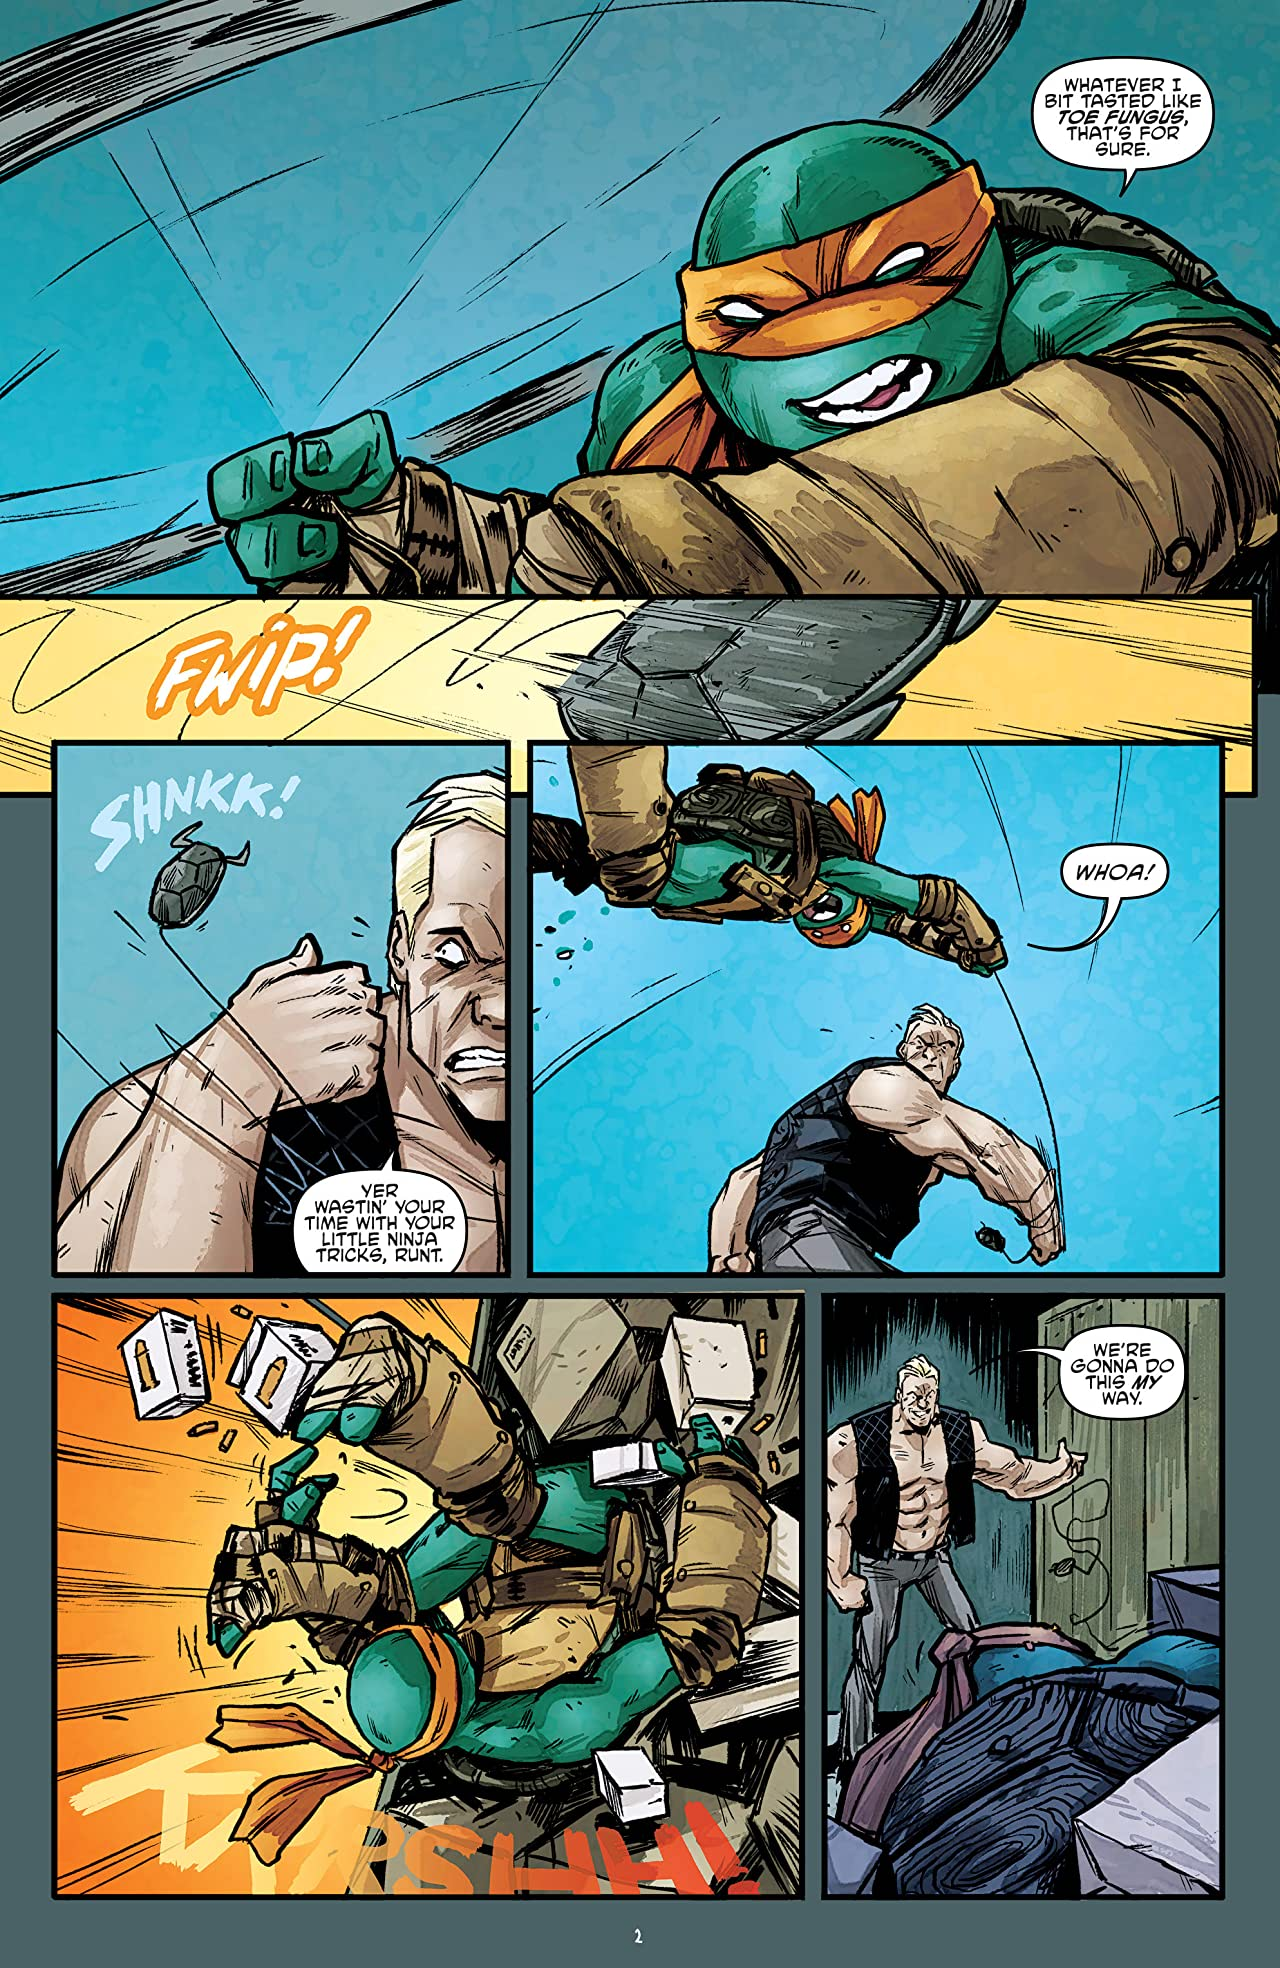 Teenage Mutant Ninja Turtles #54